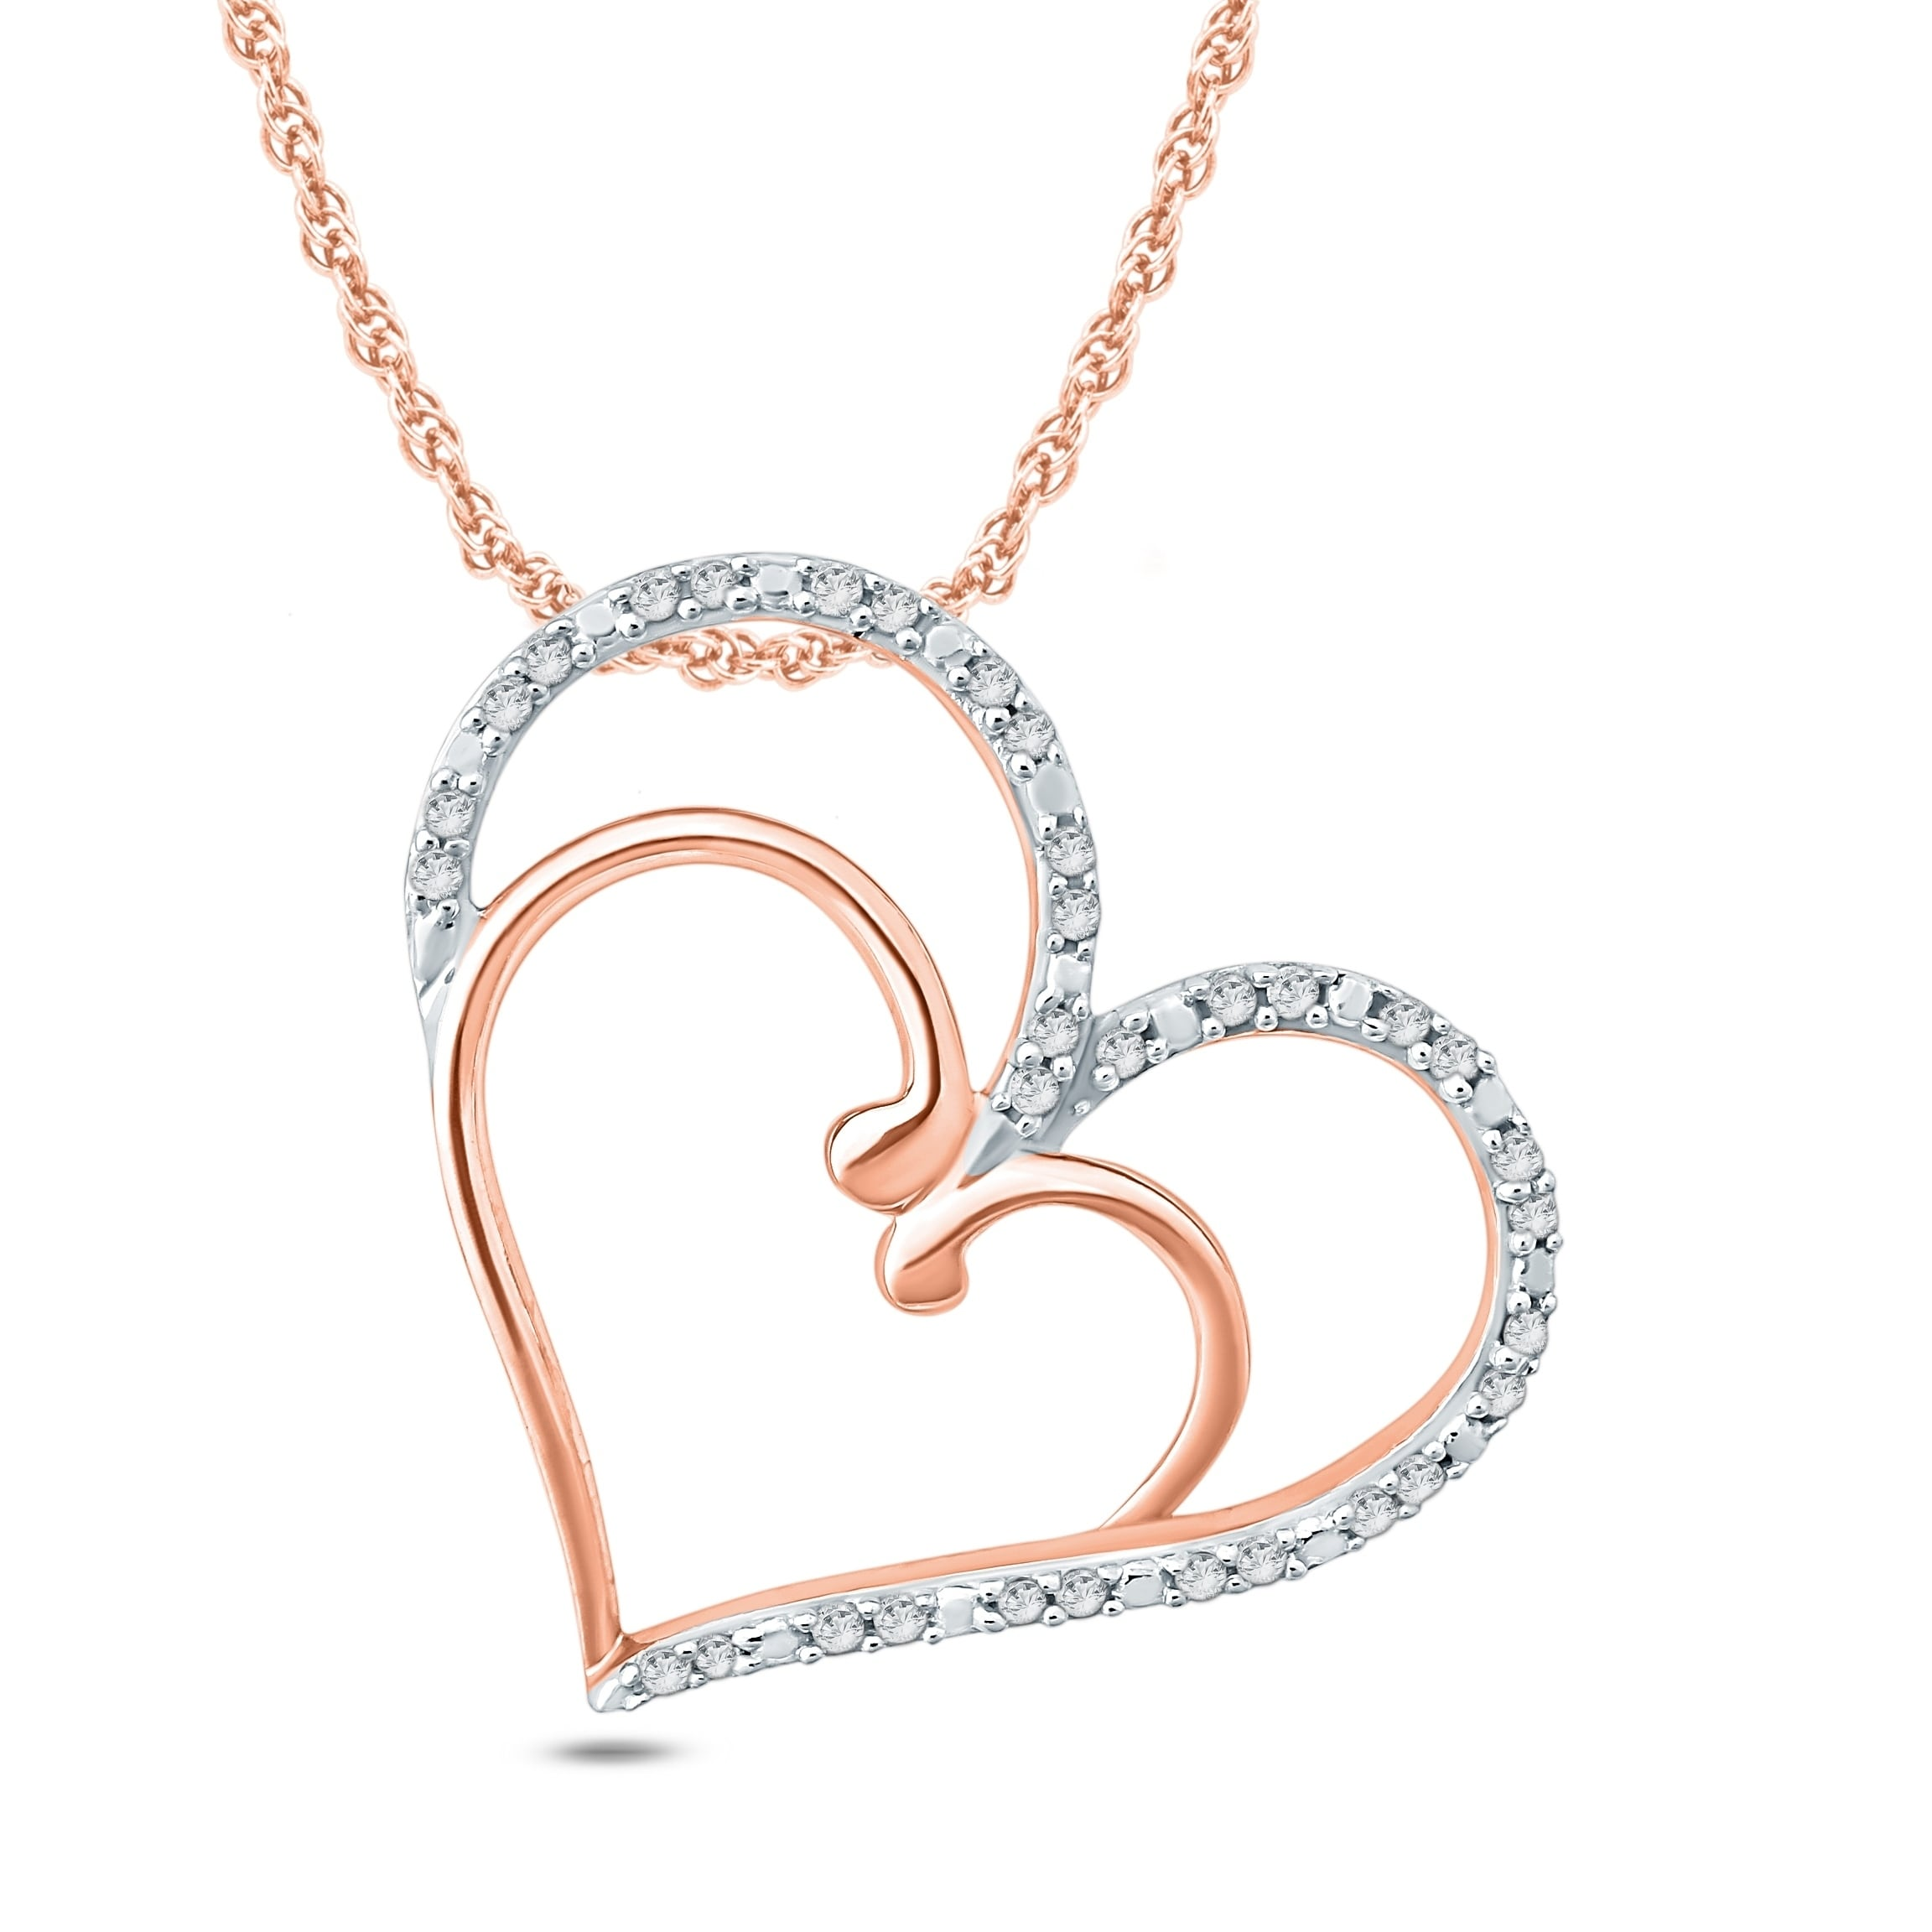 718bae4b1d1efa Cali Trove 1/10 Ct Round Diamond Double Heart Pendant In 10K Rose Gold. -  Pink